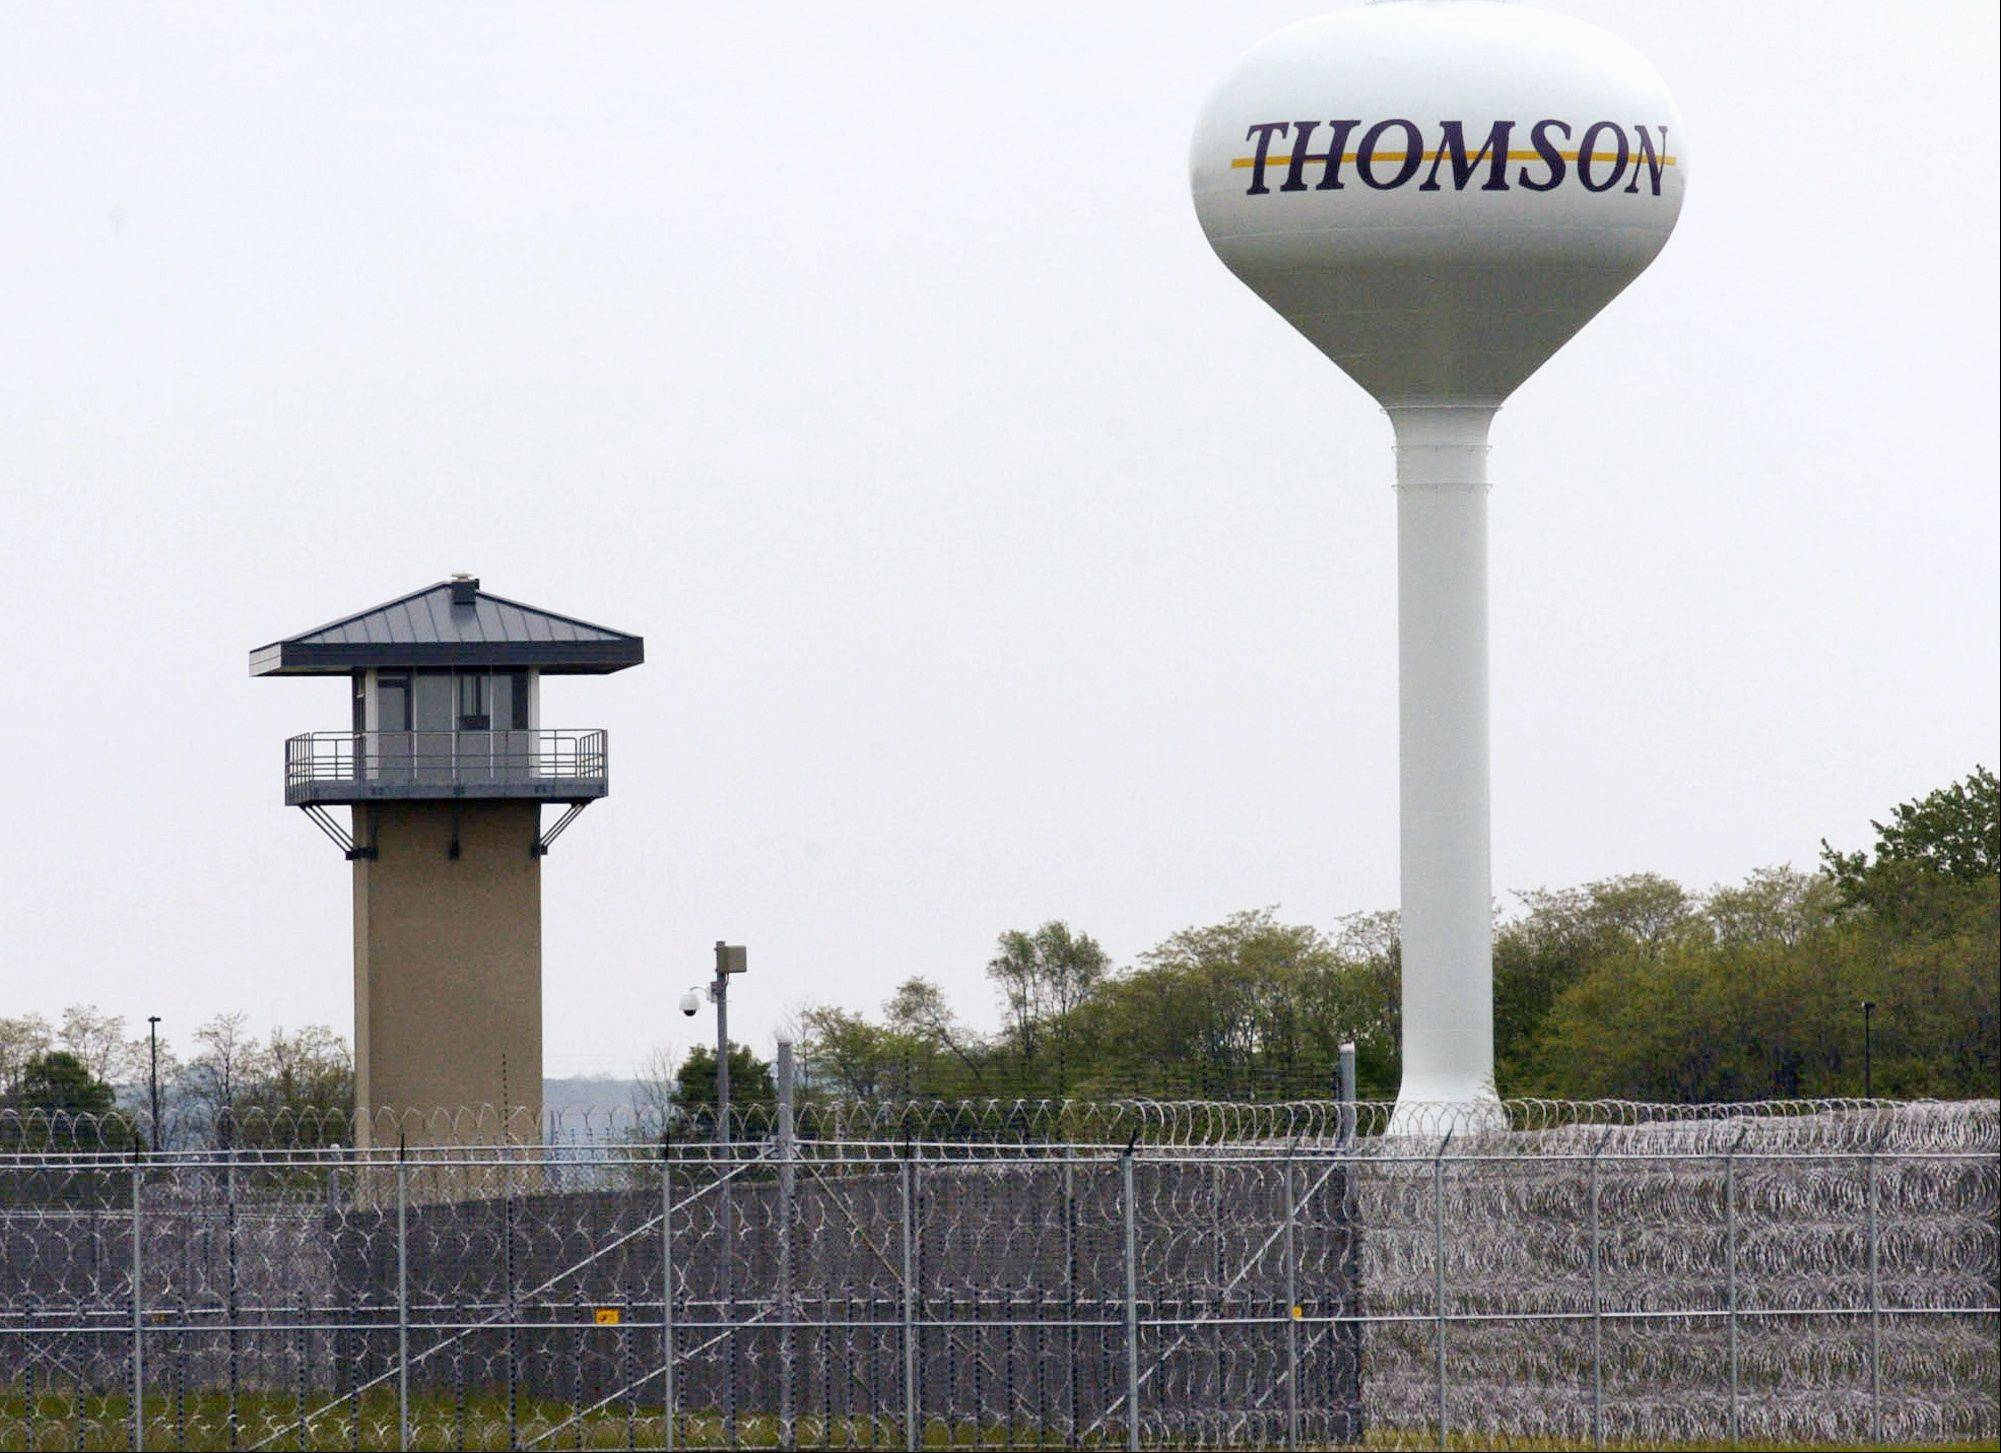 U.S. Senate committee OKs Thomson prison funding